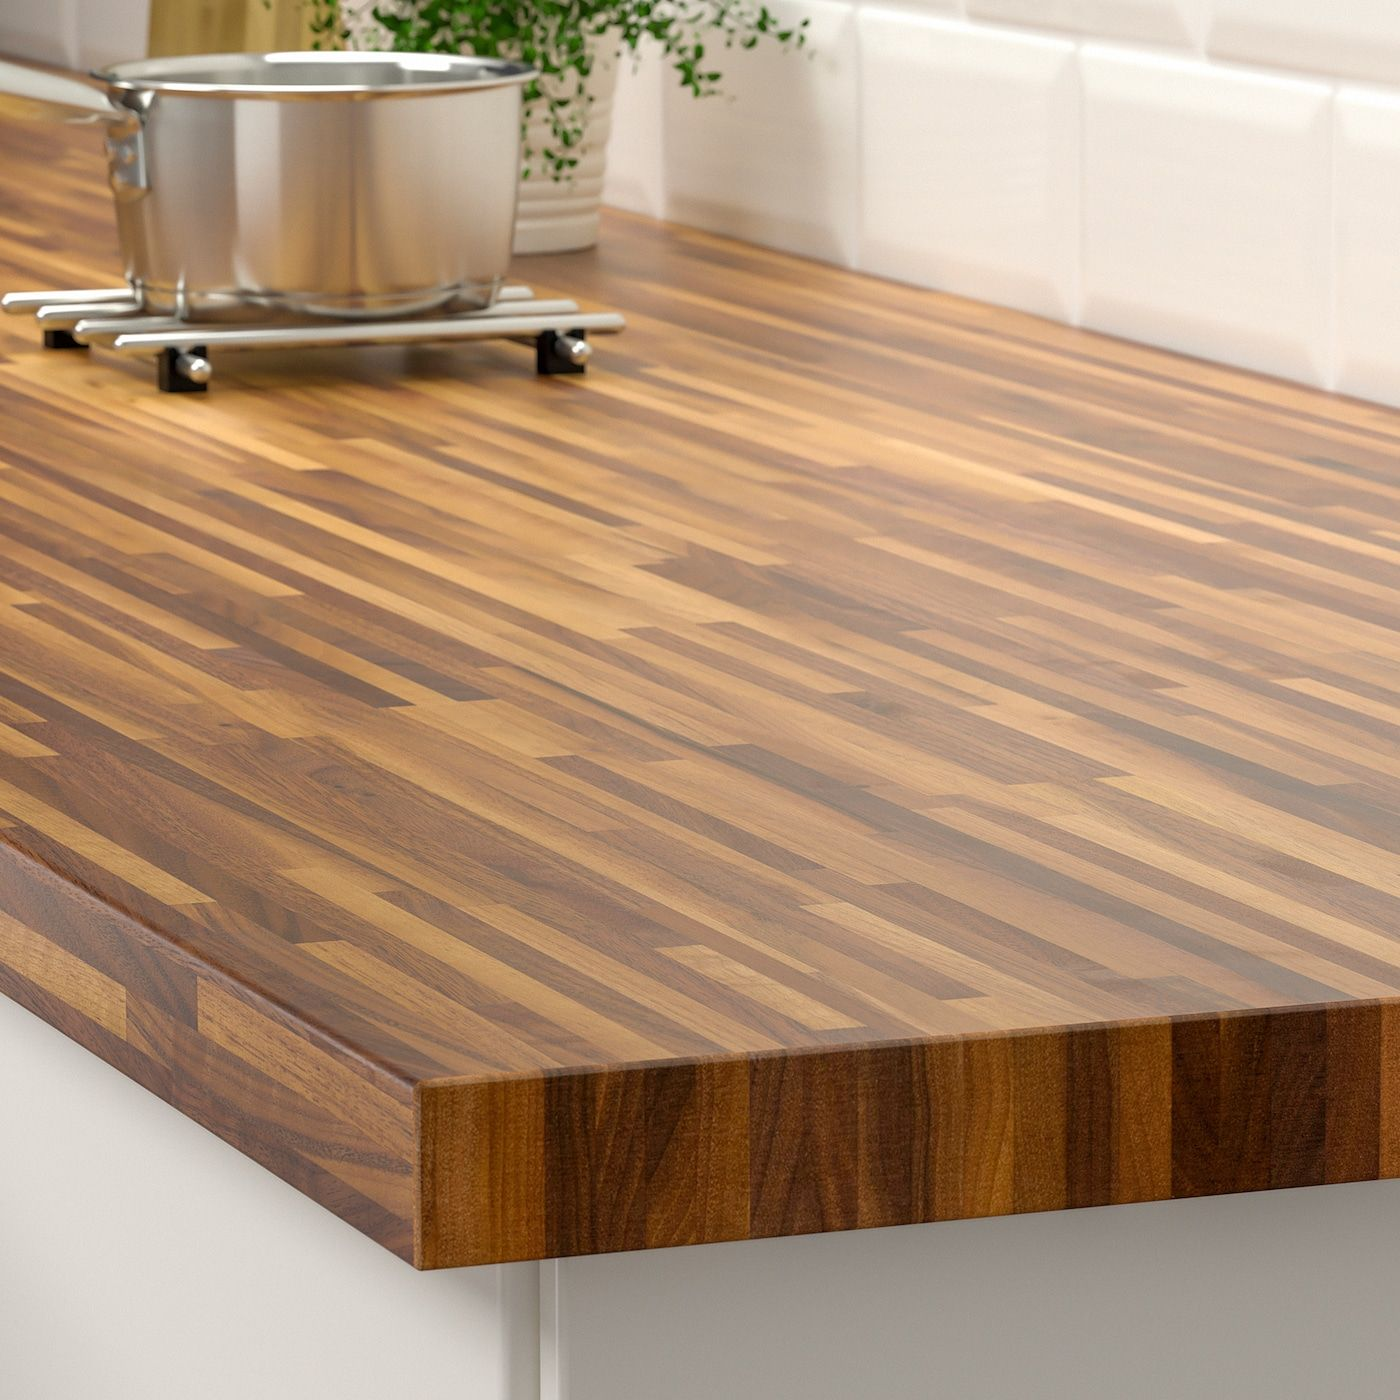 Pinnarp Countertop Walnut Veneer 98x1 1 2 Ikea In 2020 Wood Countertops Wooden Countertops Kitchen Wood Countertops Kitchen